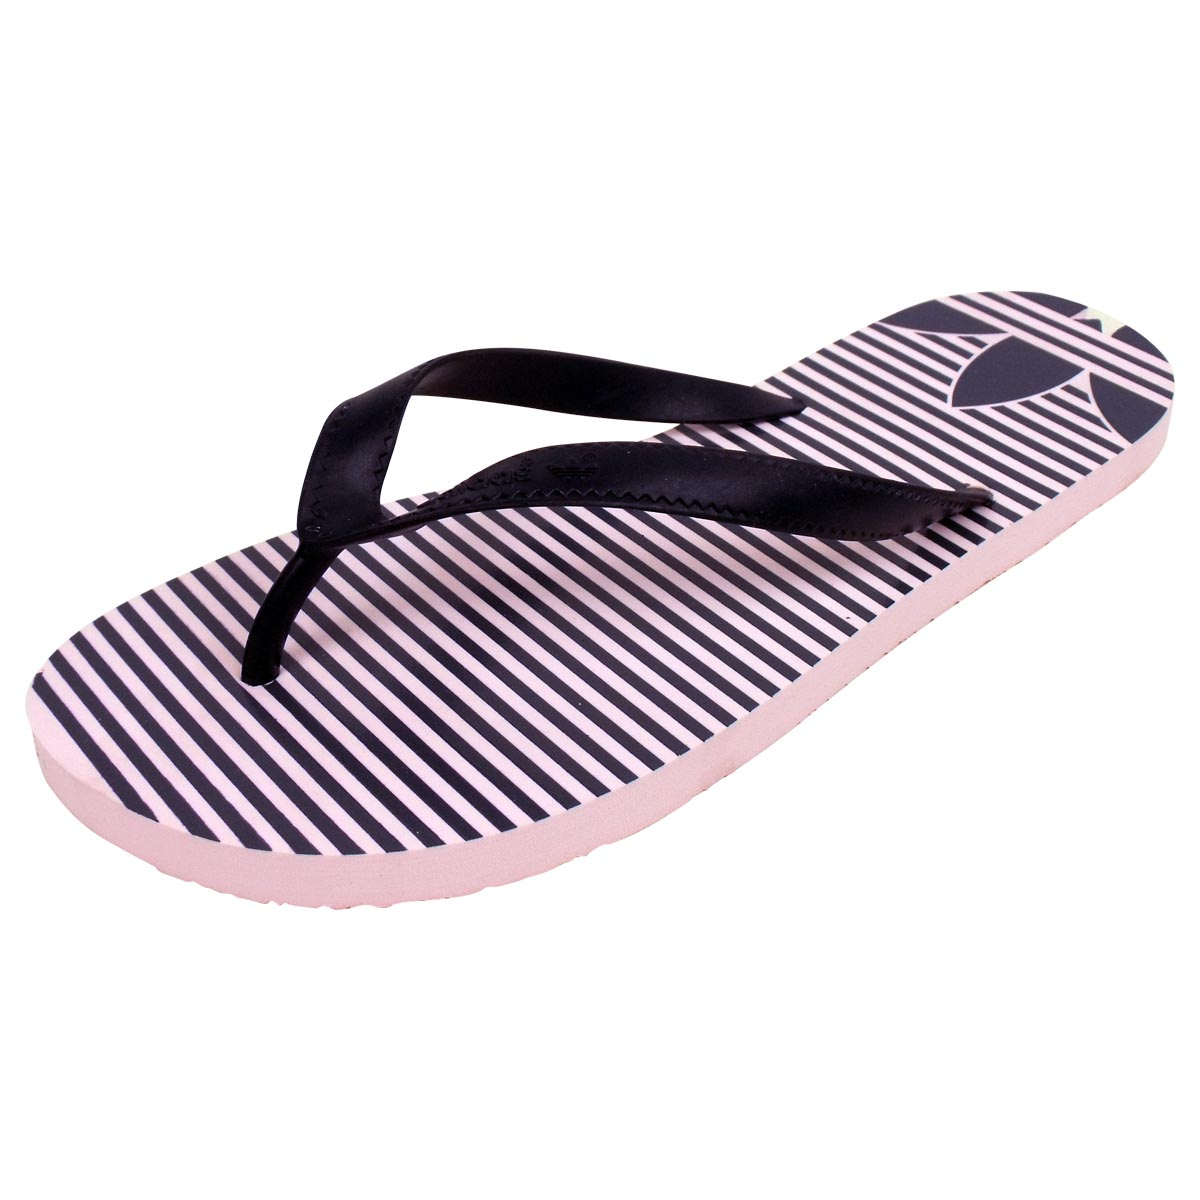 9e0aa771a Details about Mens Adidas Adi Sun Slide Sandal Pool Beach Water Flip Flop  Sandals Shower Shoes